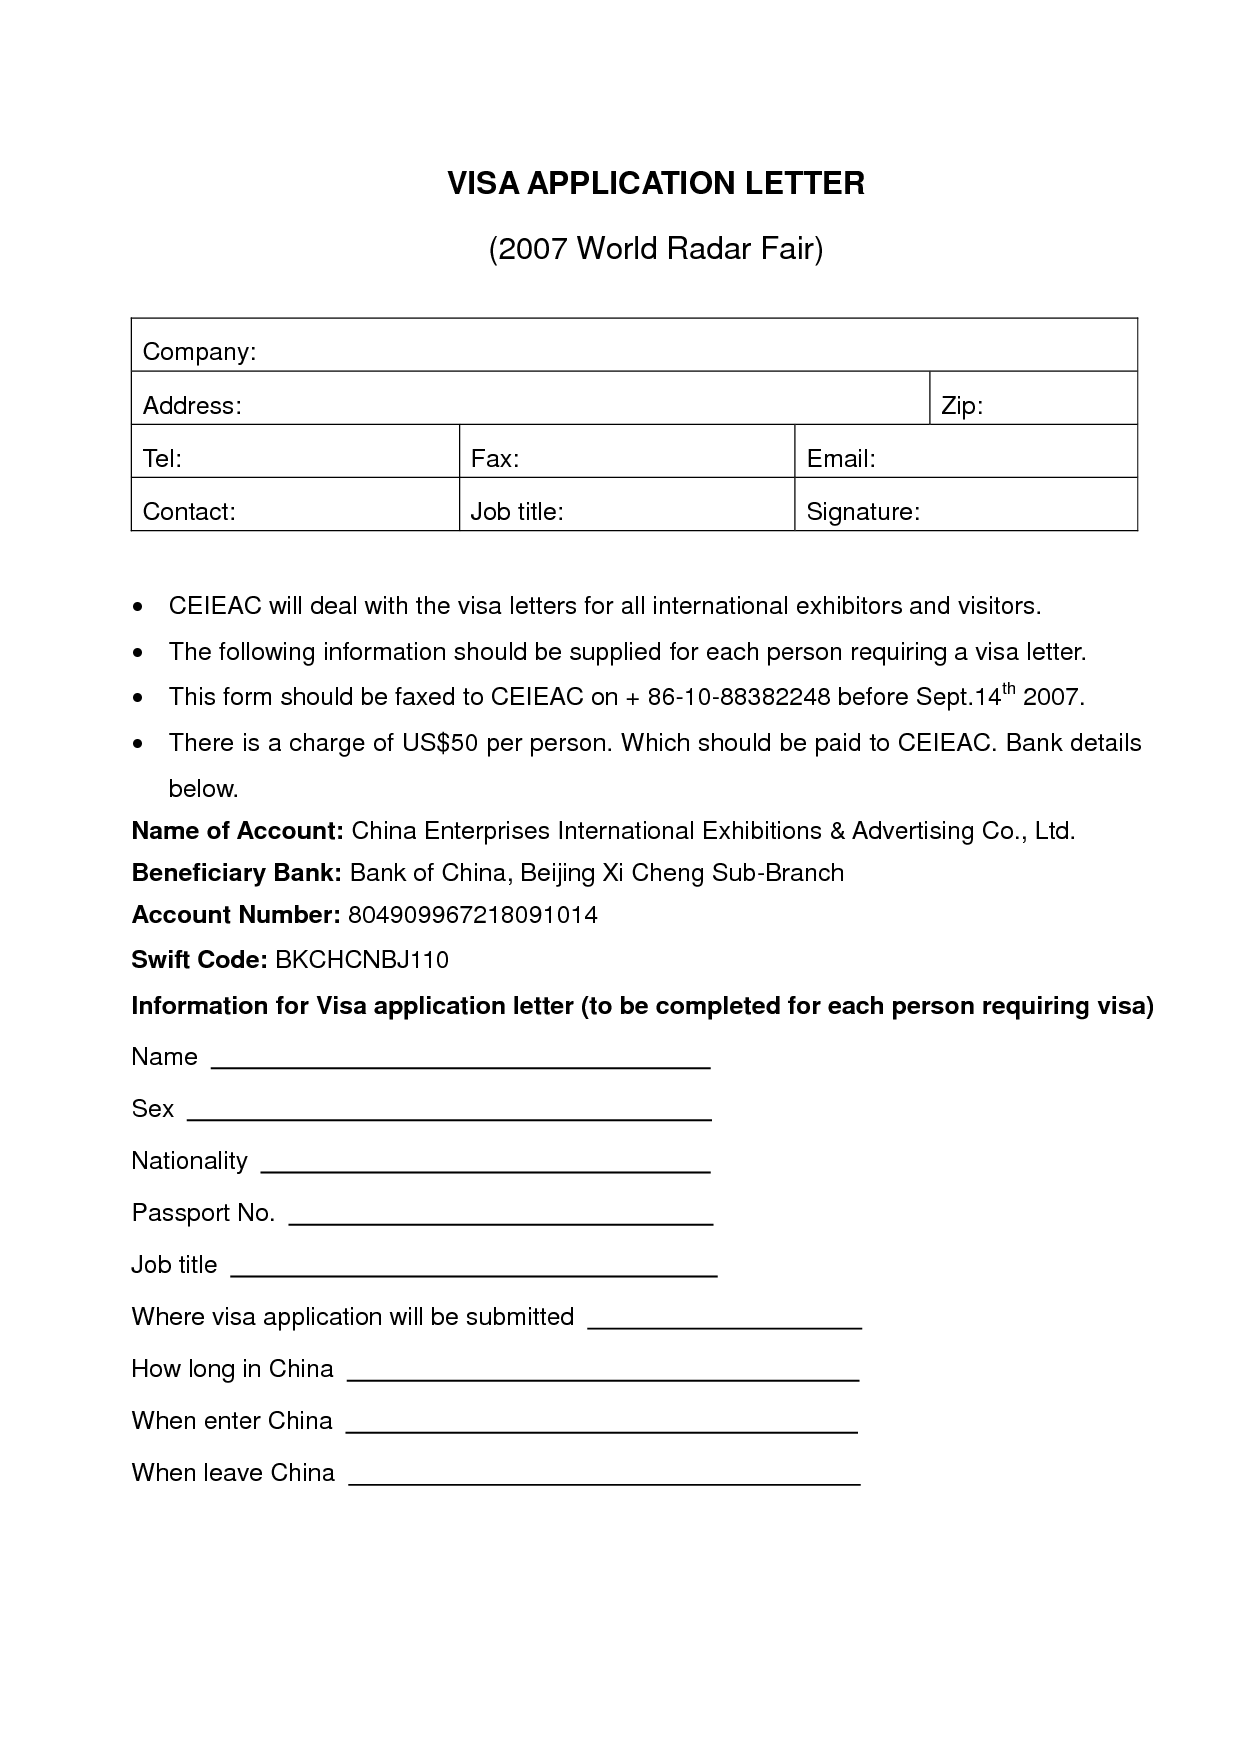 application letter 2 essay We will write a custom essay sample on a job application letter specifically for you for only $1638 $139/page order now  topic: a job application letter how about.